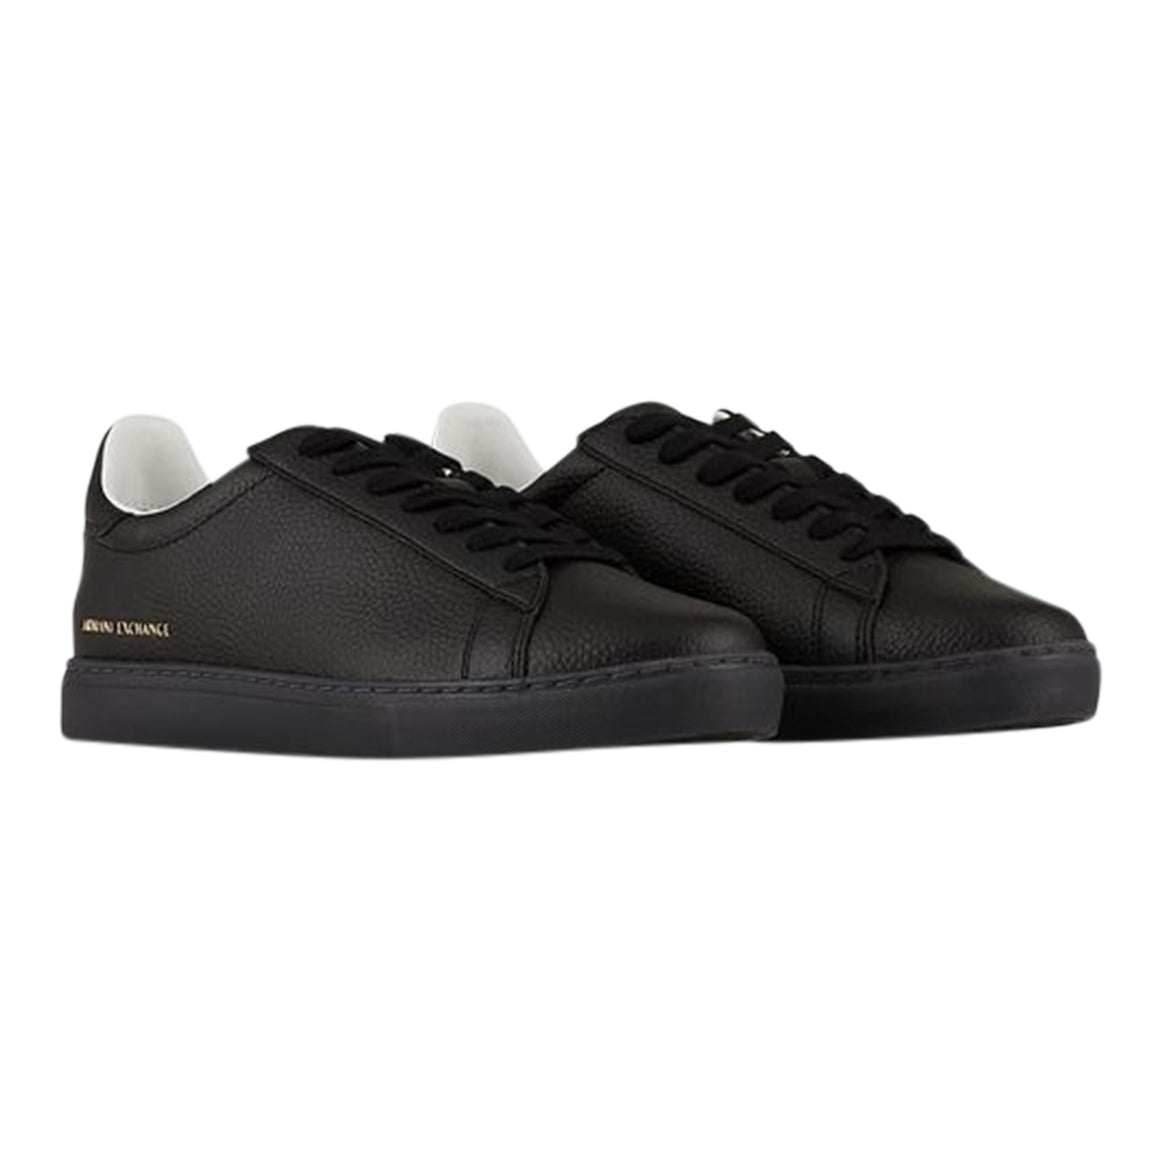 Sneaker for Men in Black